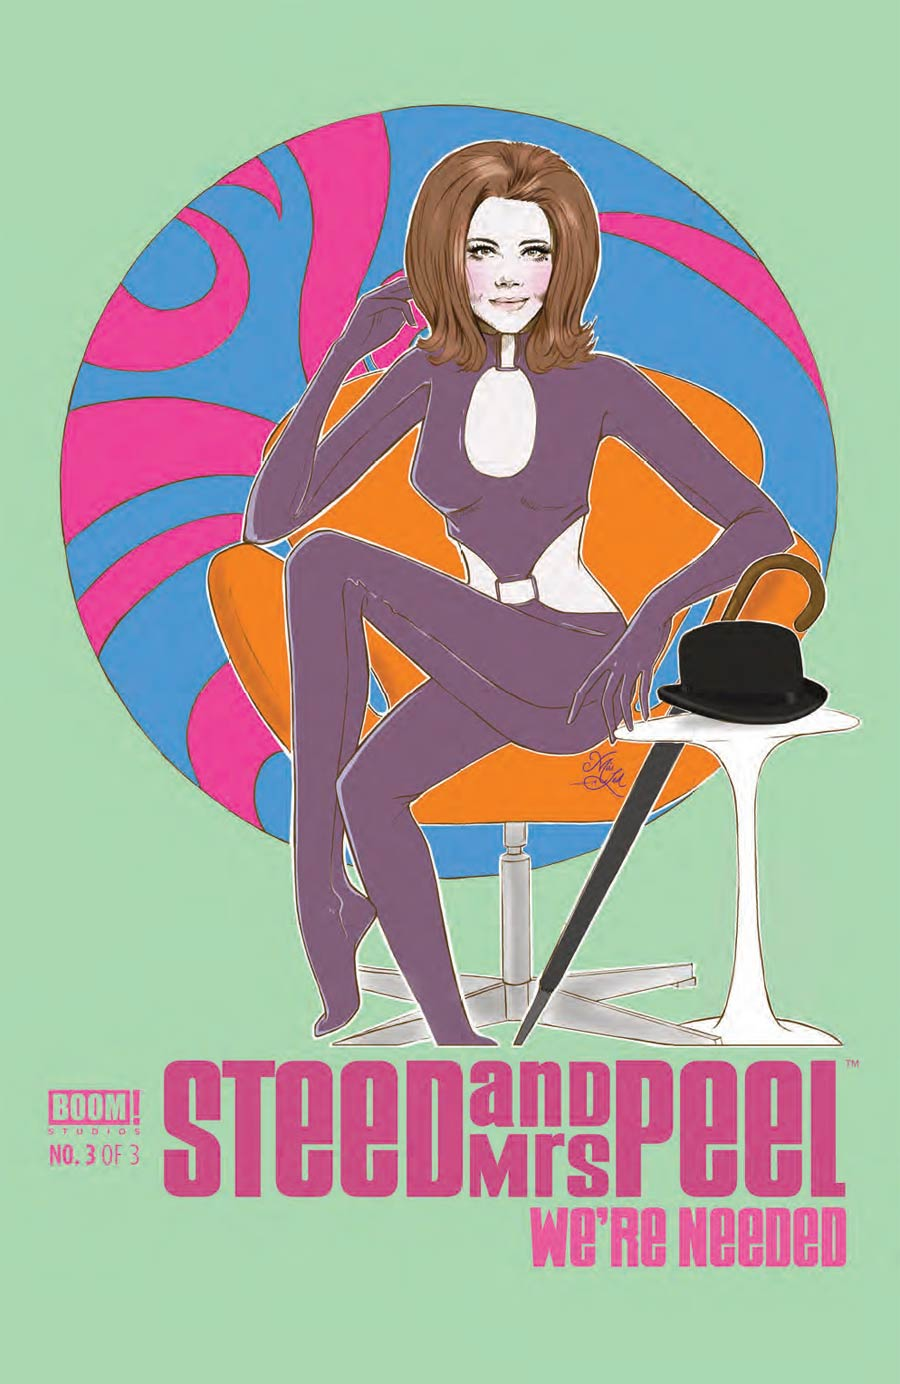 Steed And Mrs Peel Were Needed #3